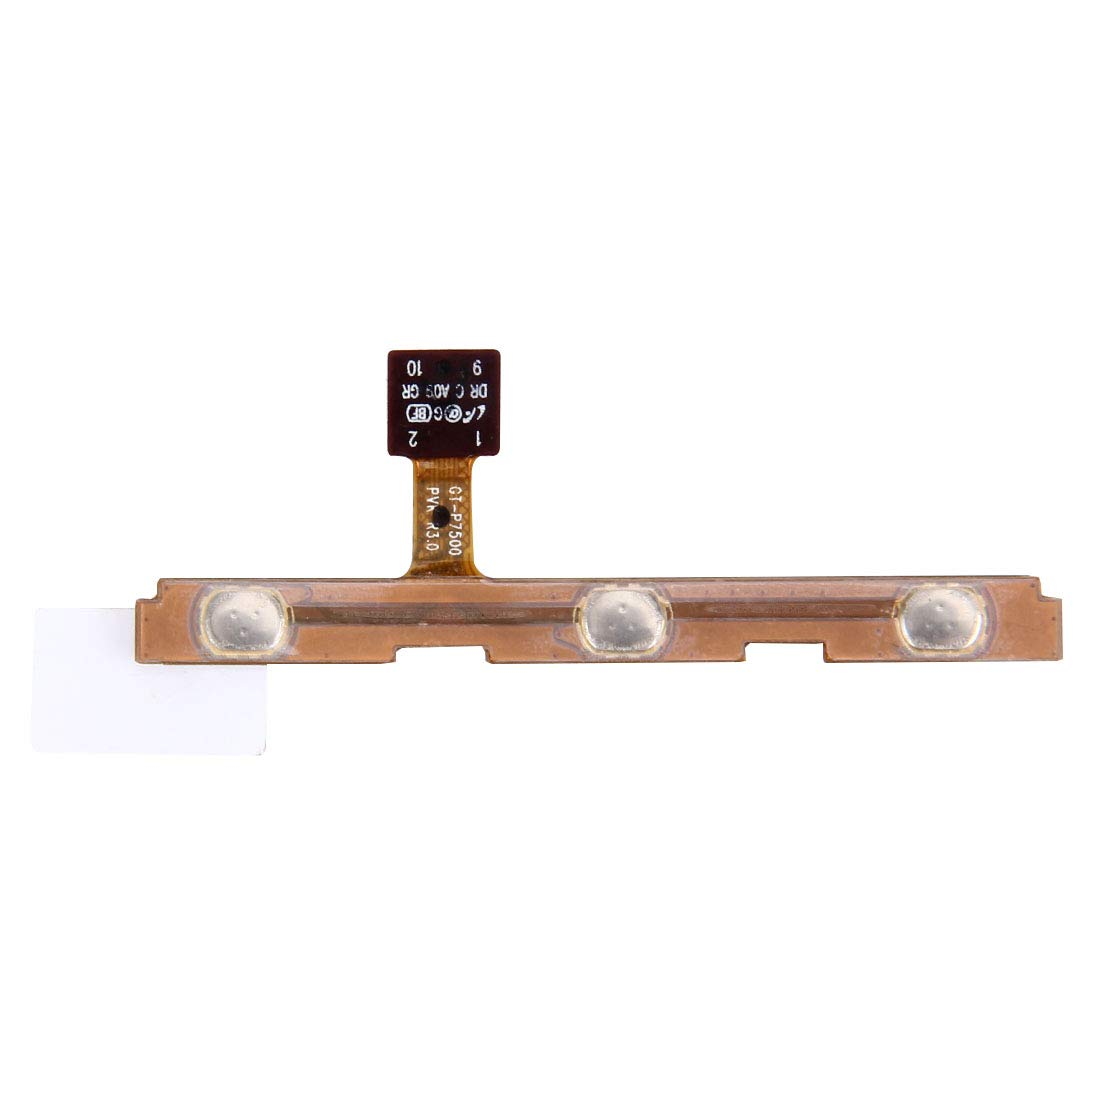 YUANLI SKP Repair&Spare Part Power Button and Volume Button Flex Cable for Galaxy Tab 10.1 / P7500 / P7510